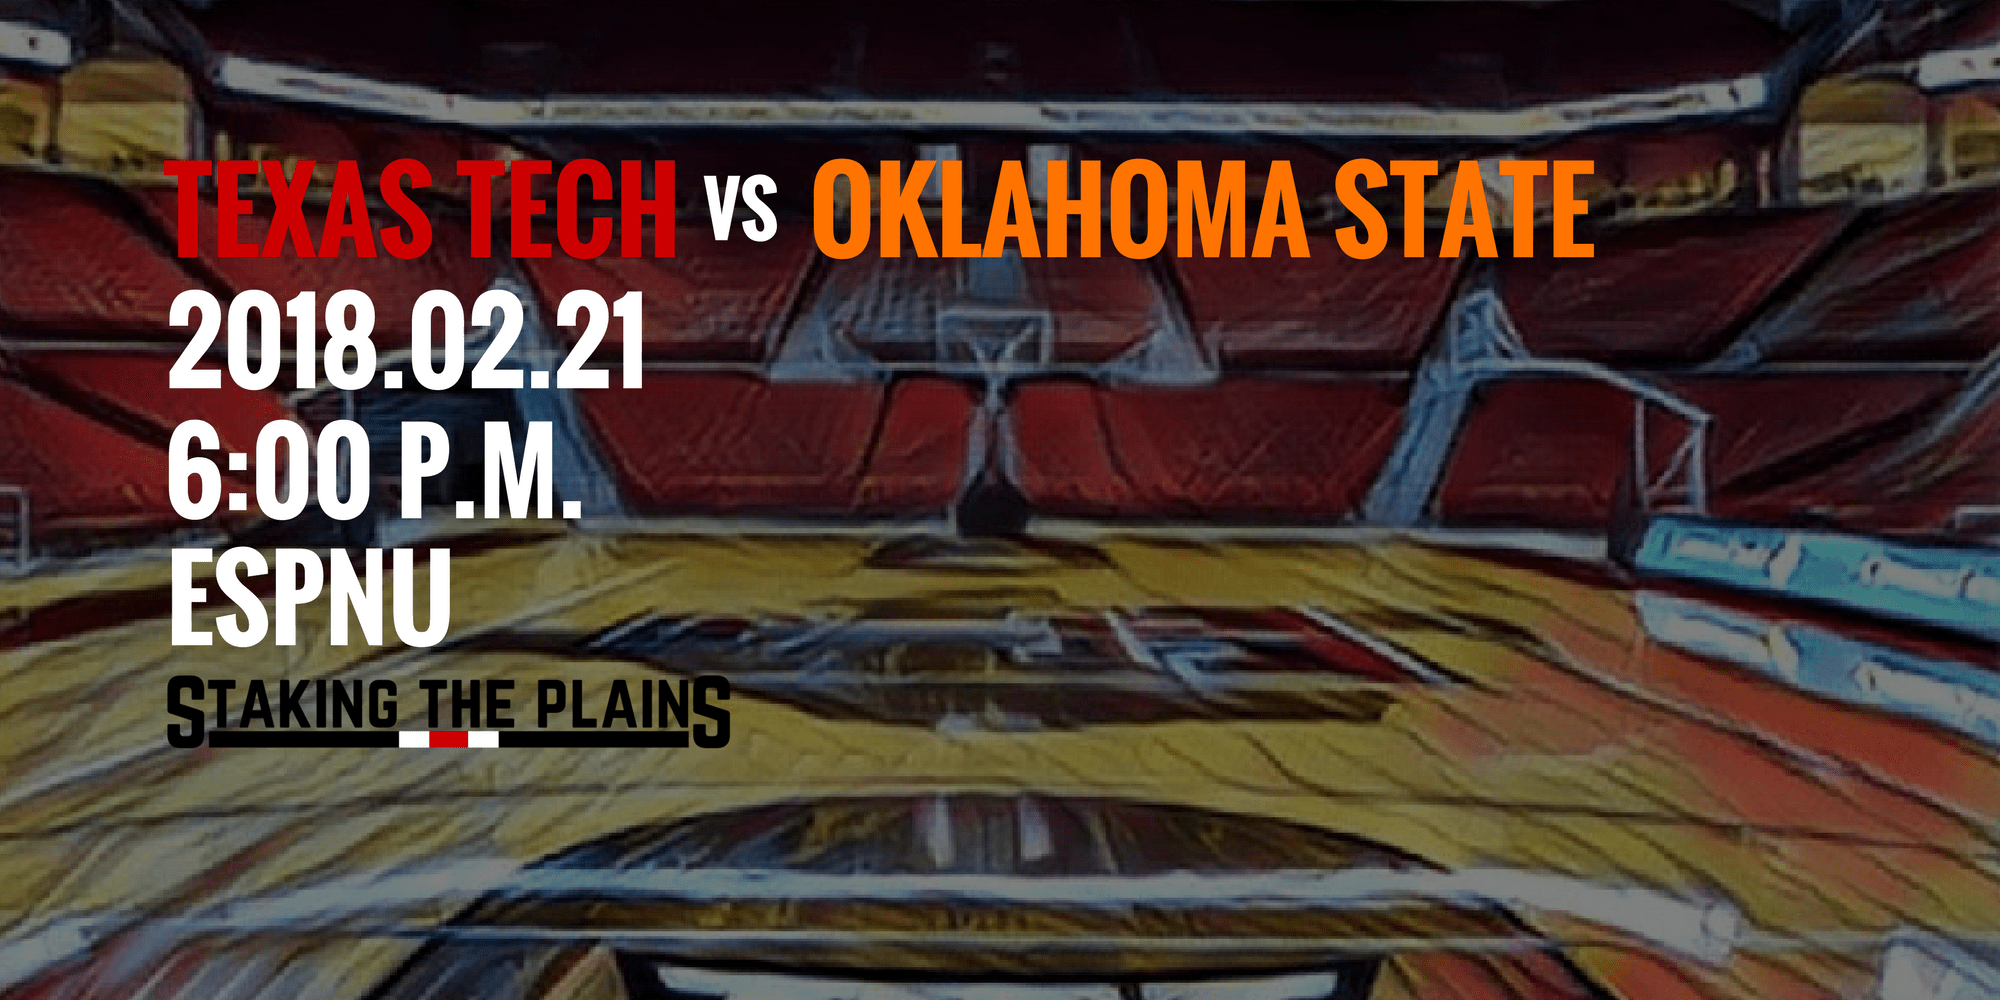 Game Preview and Open Thread: Texas Tech vs. Oklahoma State